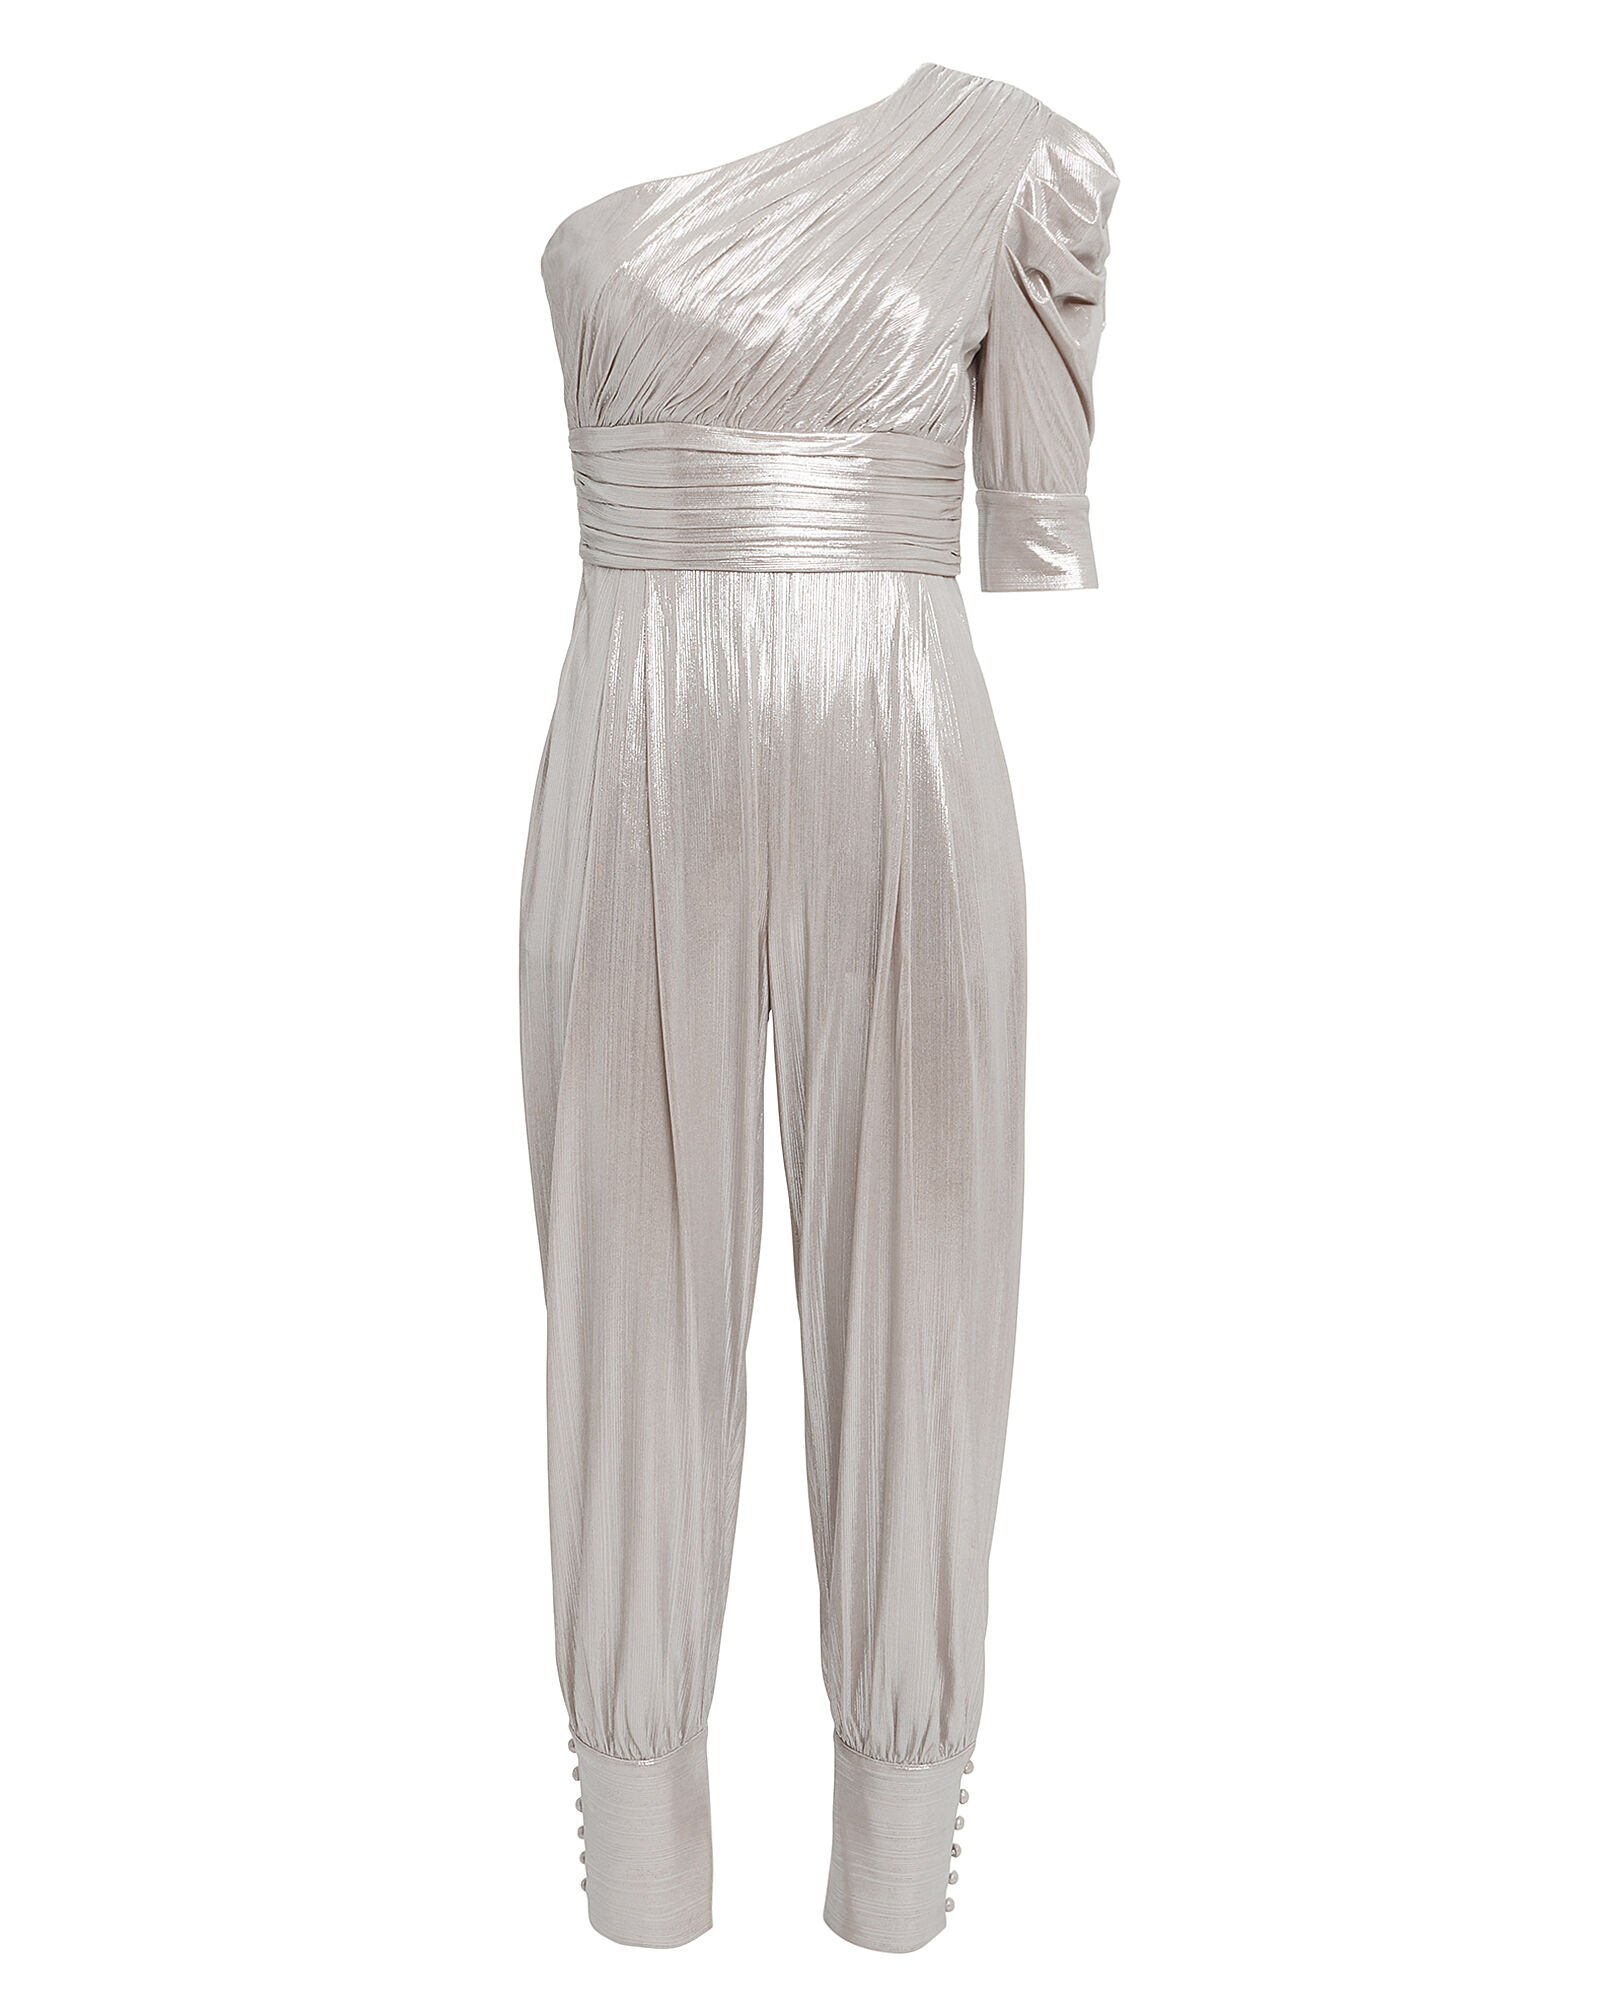 Thambi One Shoulder Lamé Jumpsuit, SILVER, hi-res